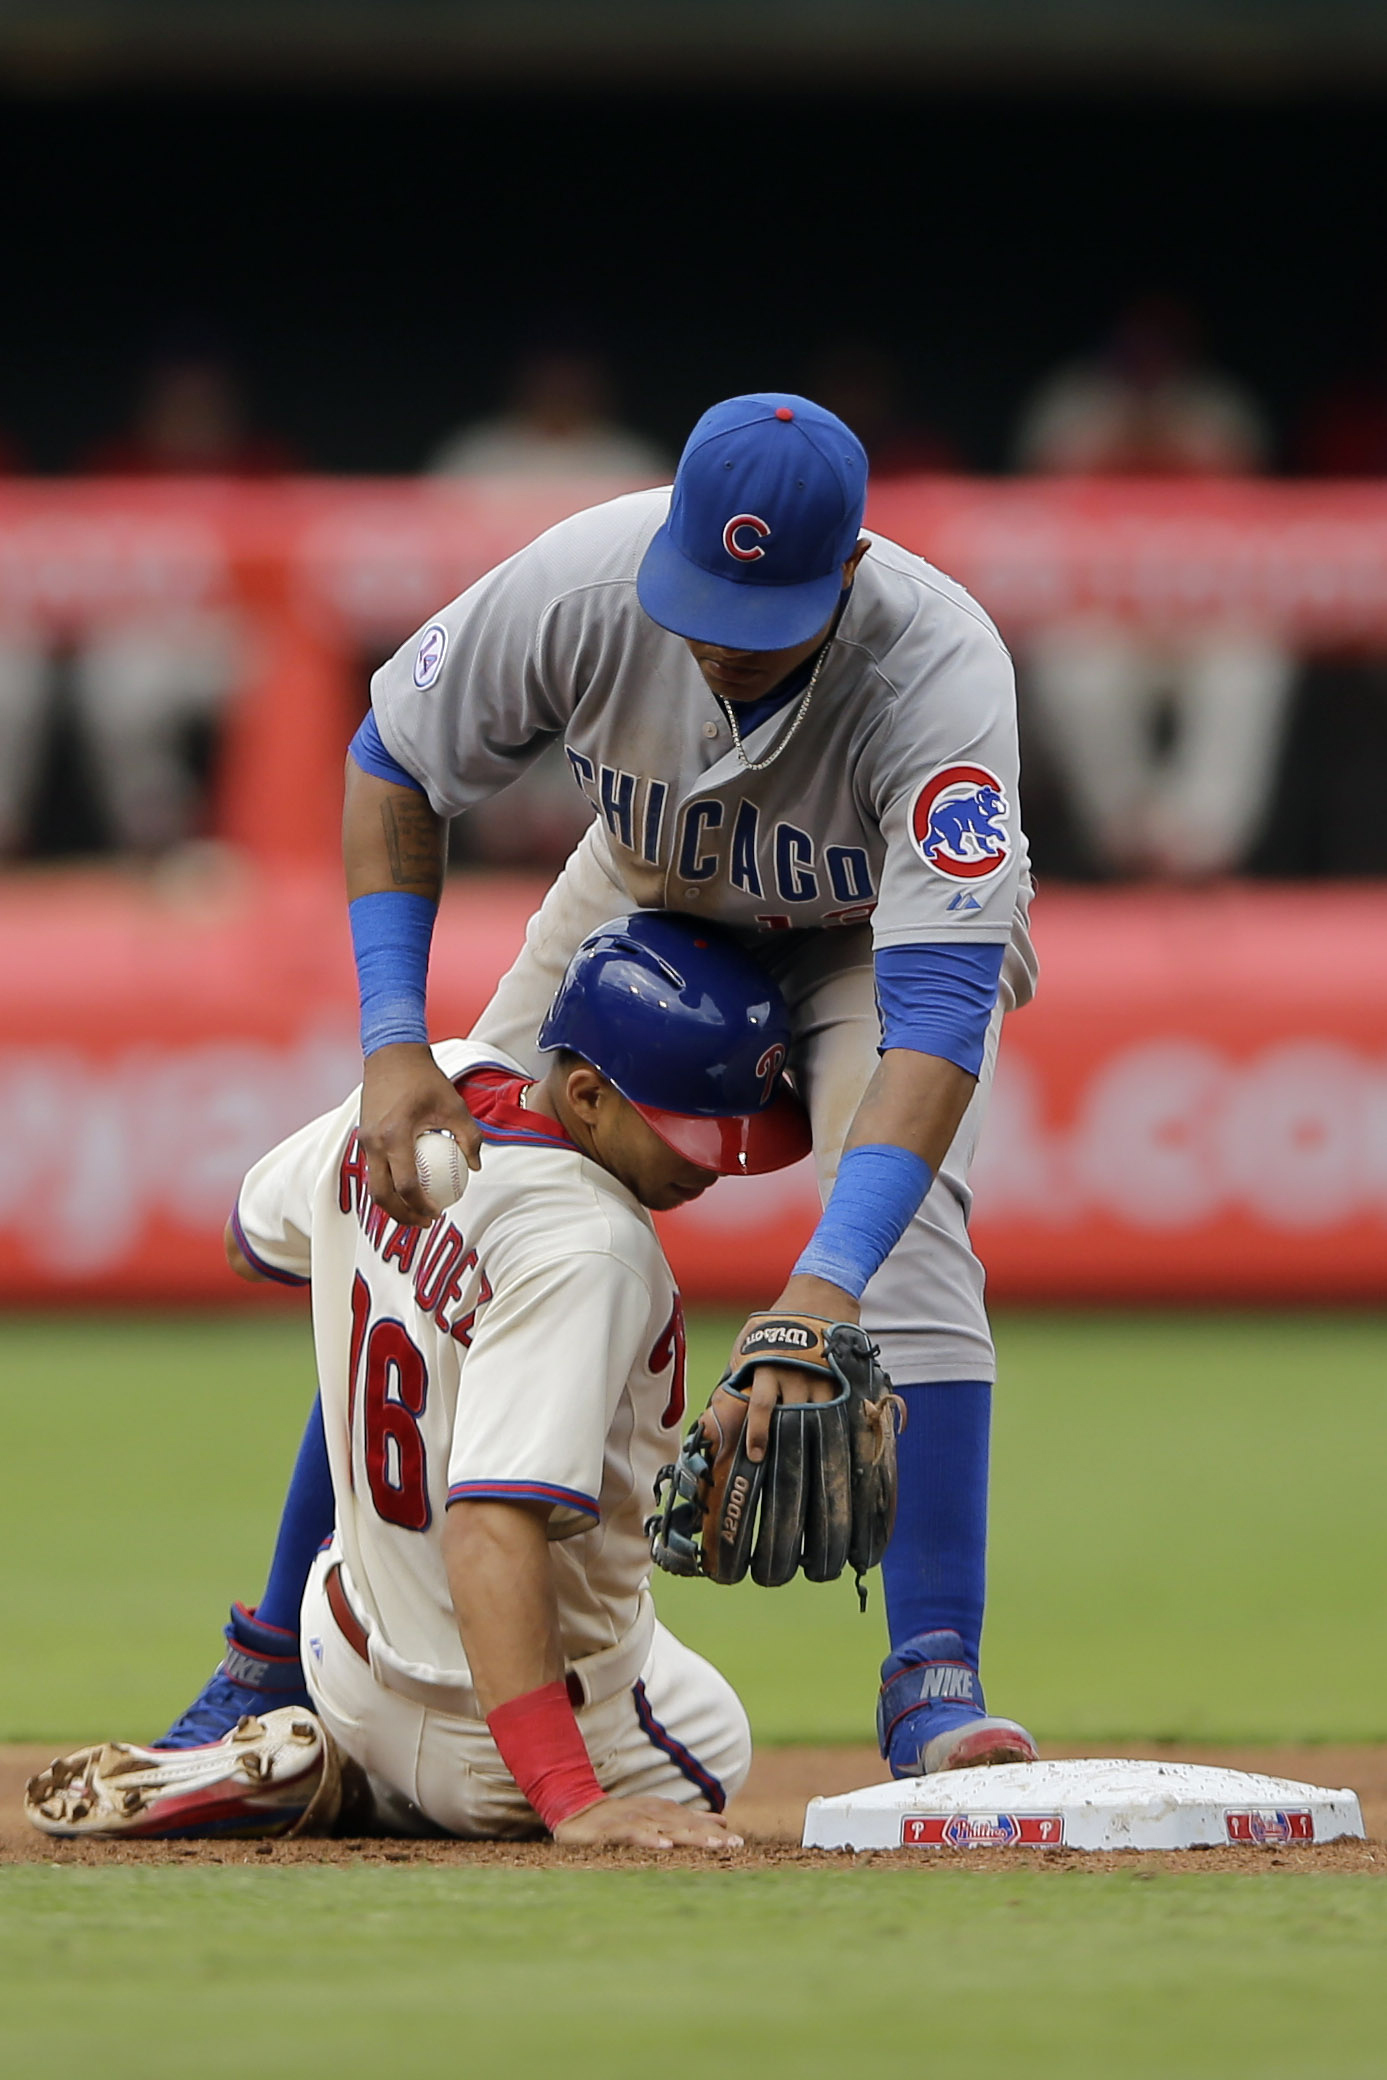 Philadelphia Phillies' Cesar Hernandez, bottom, collides with Chicago Cubs shortstop Starlin Castro after being forced out at second base on a fielder's choice by Freddy Galvis during the fourth inning of a baseball game, Sunday, Sept. 13, 2015, in Philad